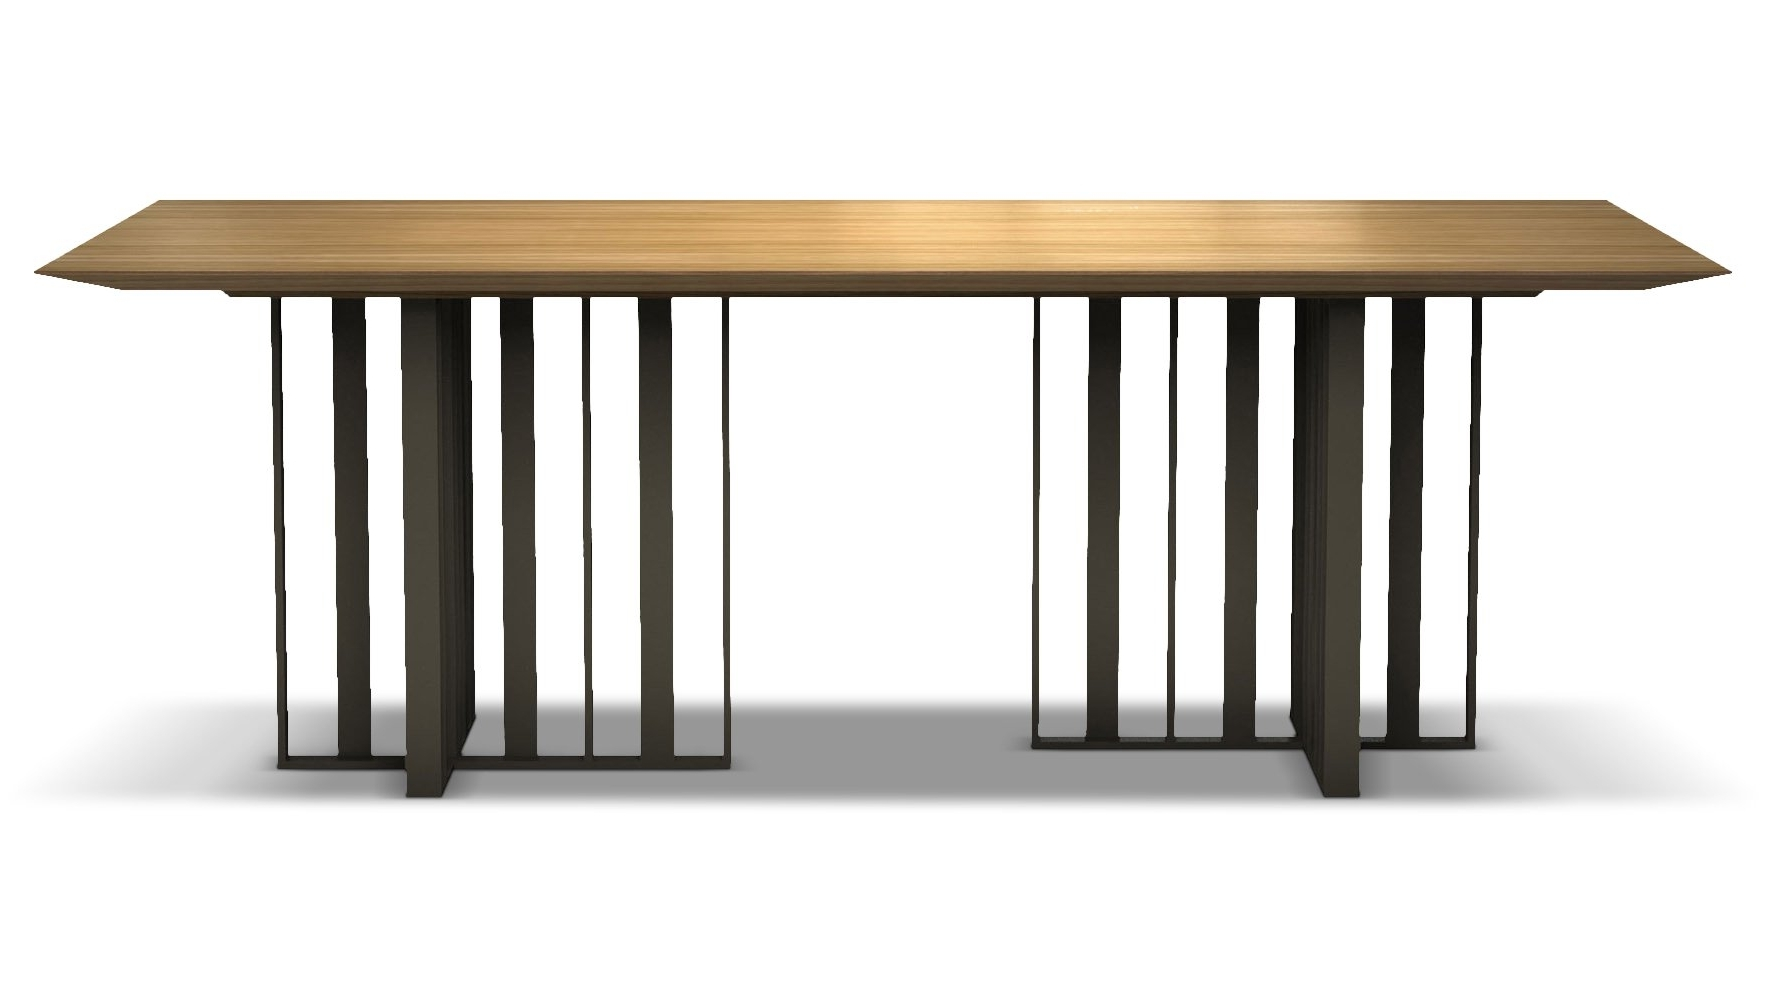 Saida 87 Inch Wood And Aluminum Dining Table, Natural Oak On Bronze With Most Recent 87 Inch Dining Tables (View 8 of 25)